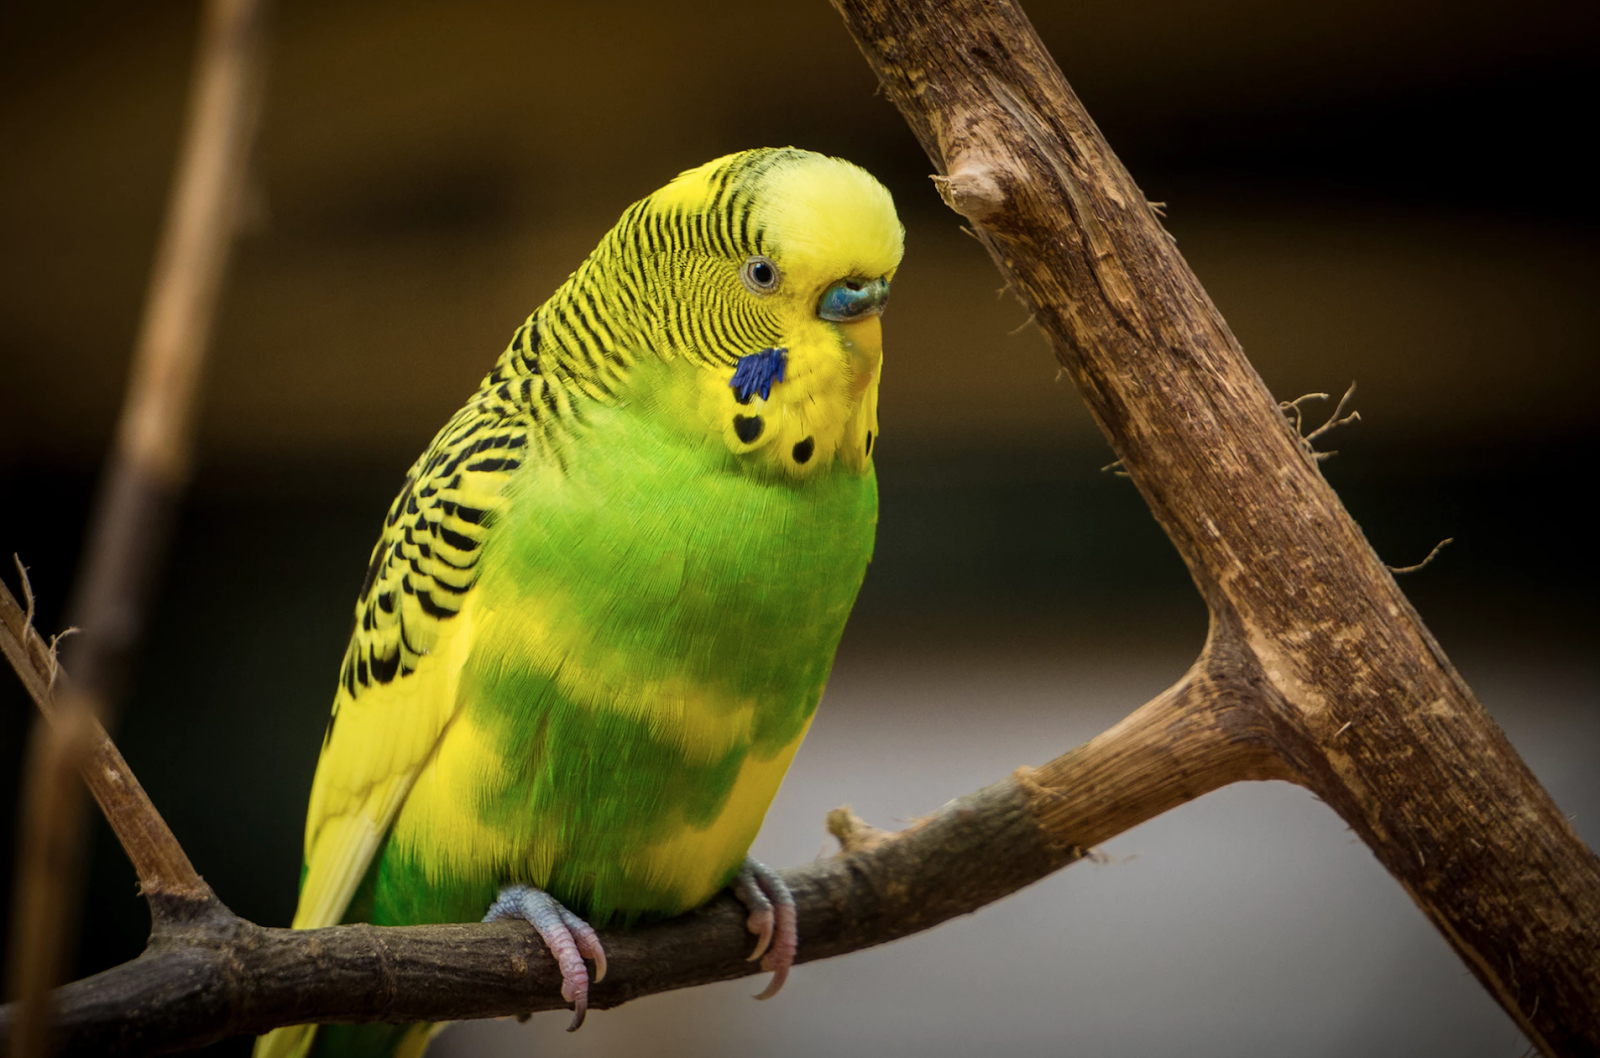 A yellow and green parakeet perches on a branch, ready to climb for exercise.